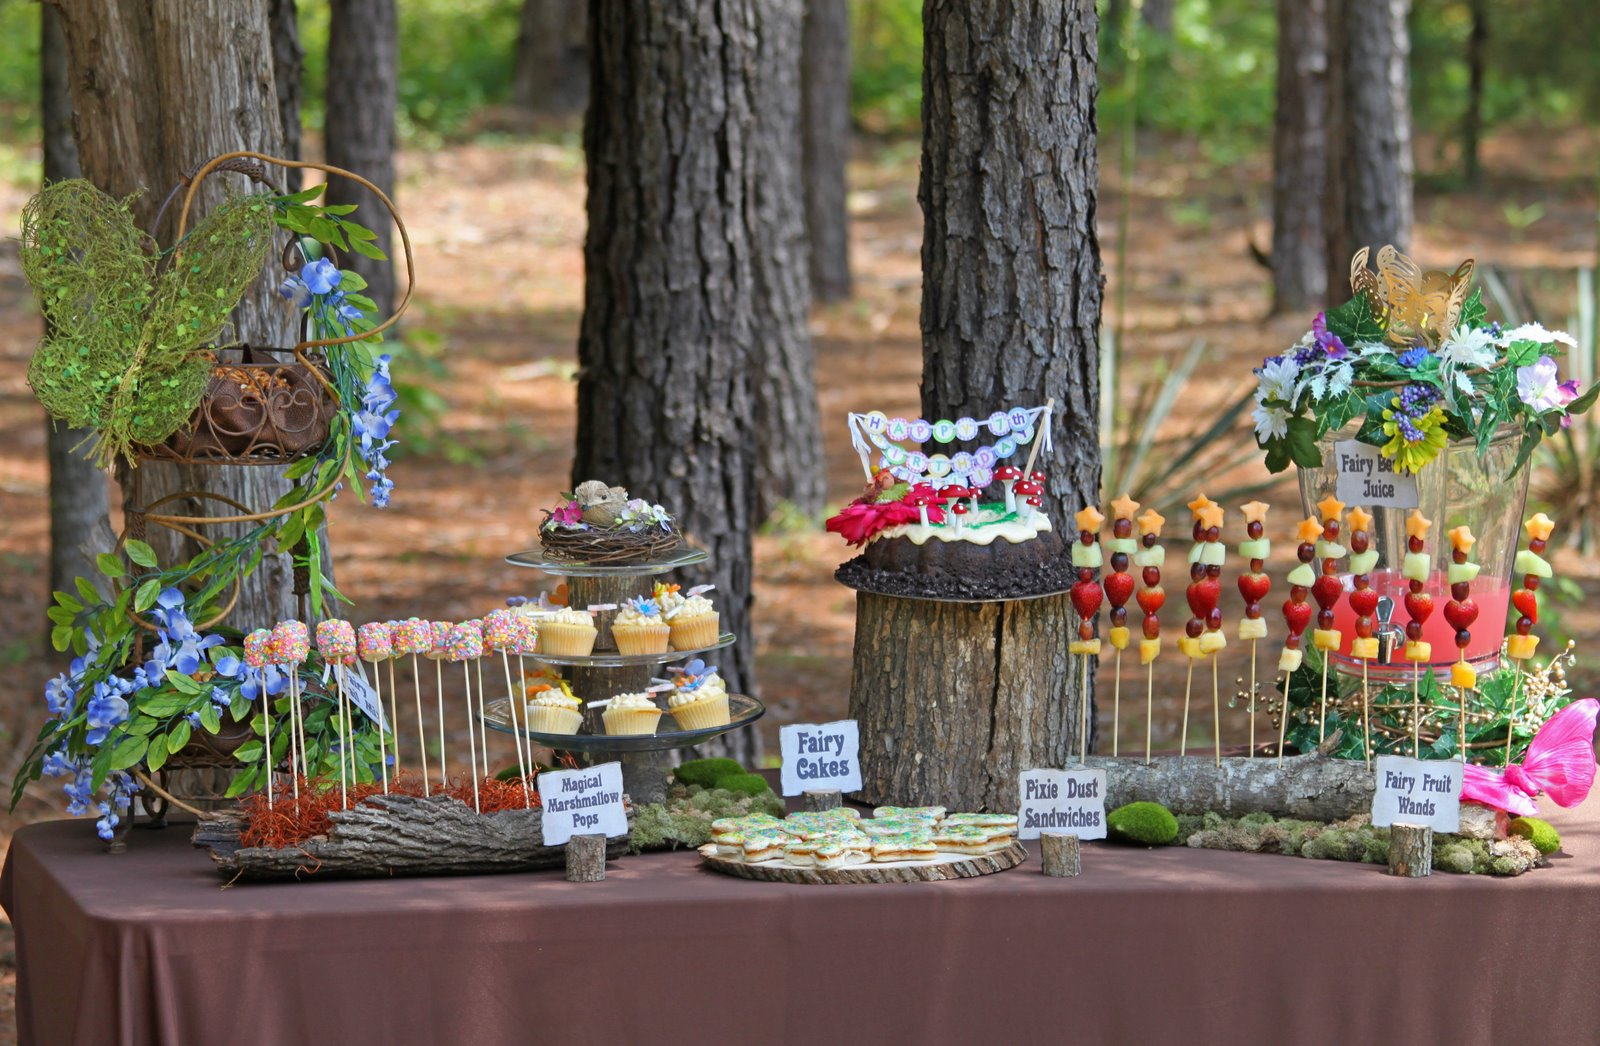 Woodland parties enchanted fairies food tables birthday for Food garden ideas